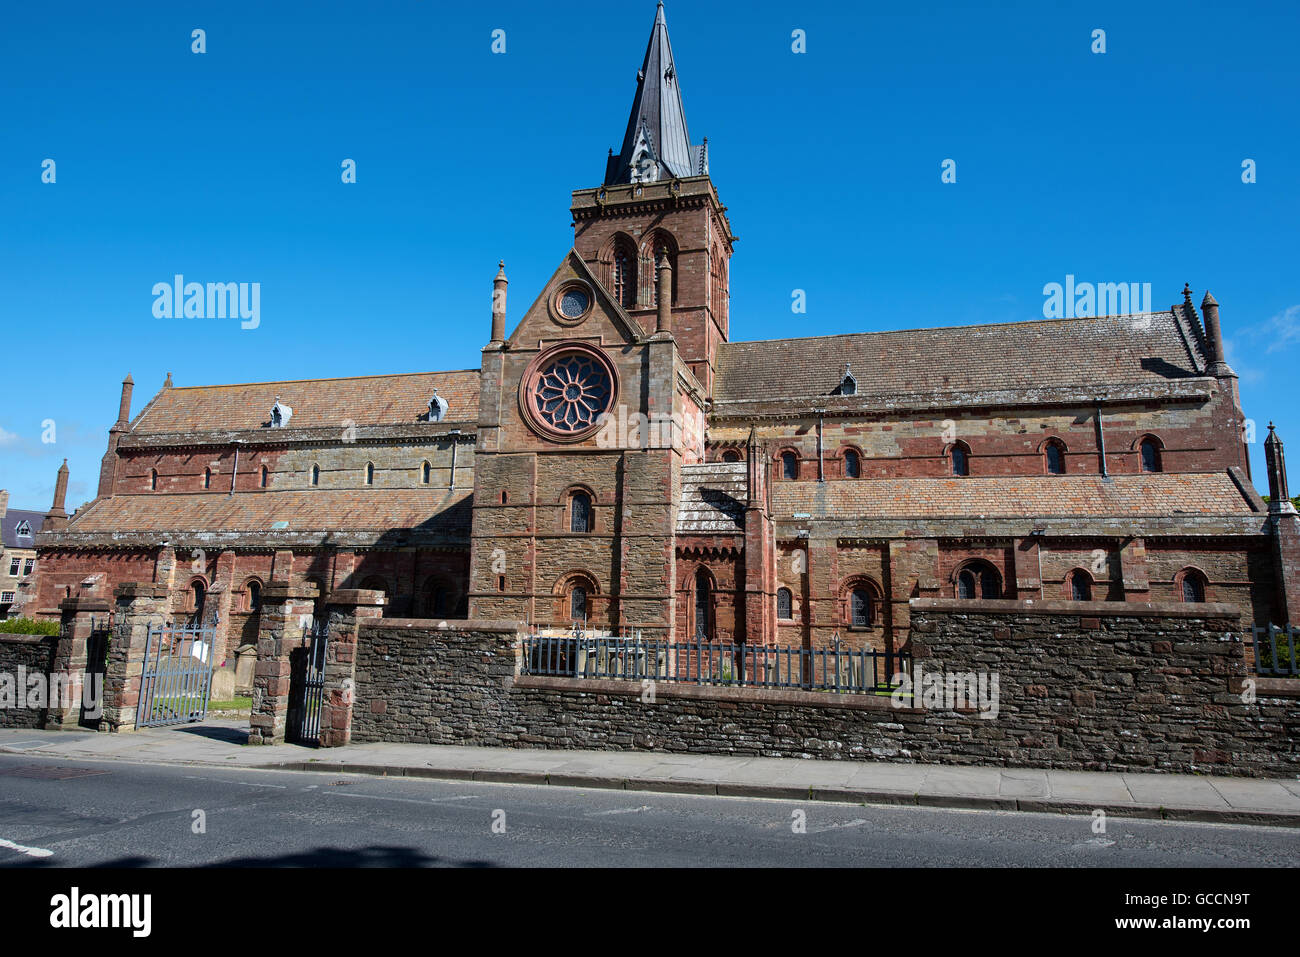 St Magnus Cathedral, in Kirkwall on the Orkney Isles.  eco 10,588 - Stock Image